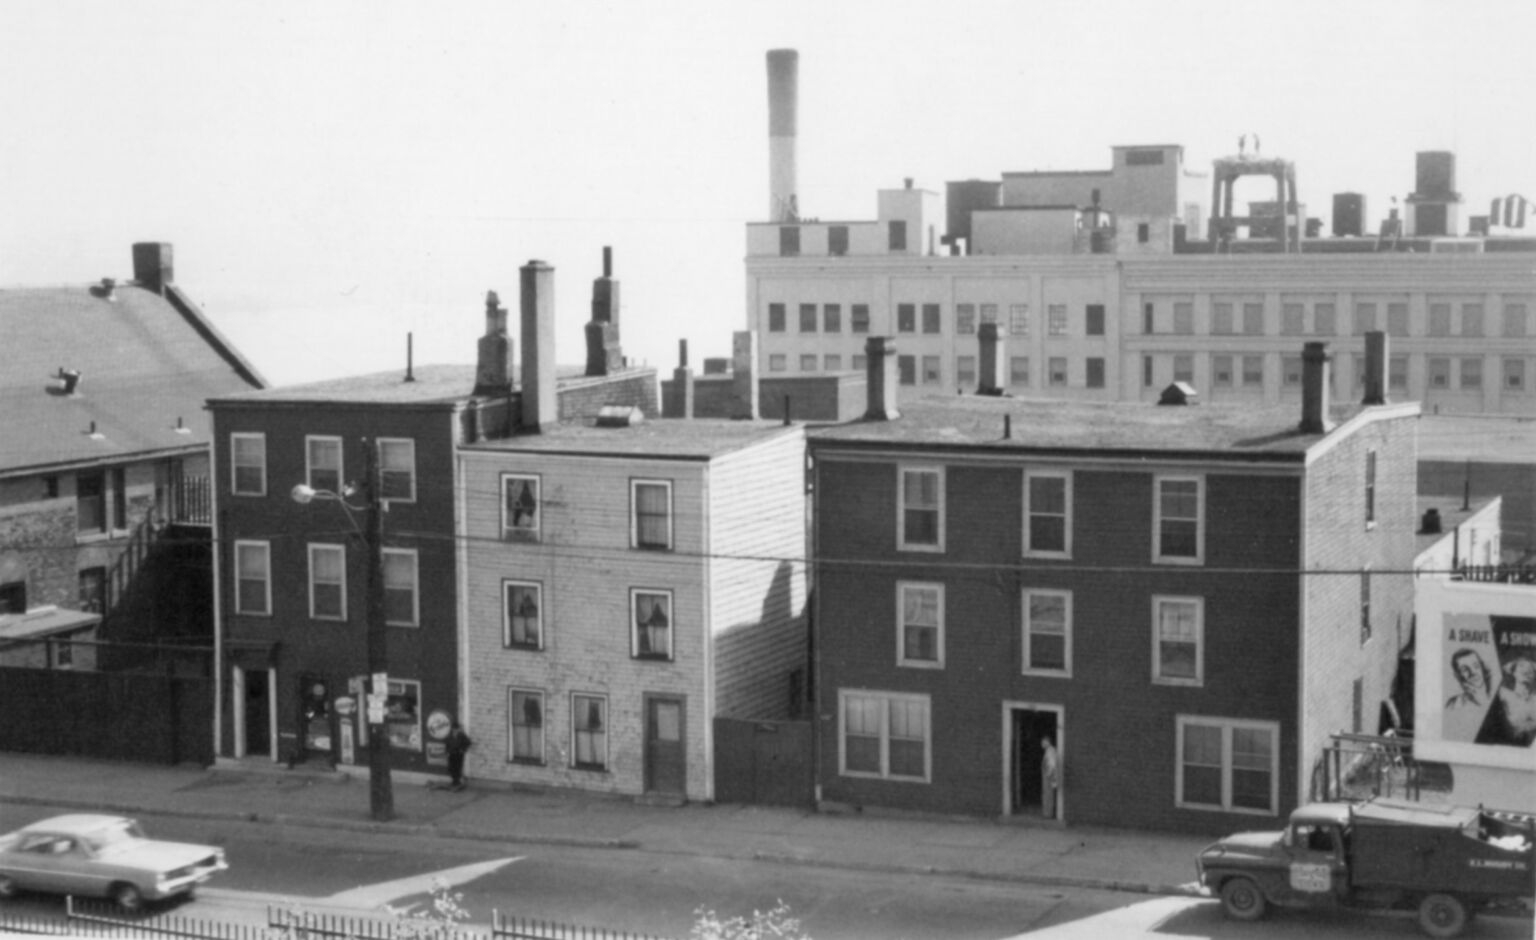 Black-and-white photo of three three-storey bulidings, with taller buildings in the background.